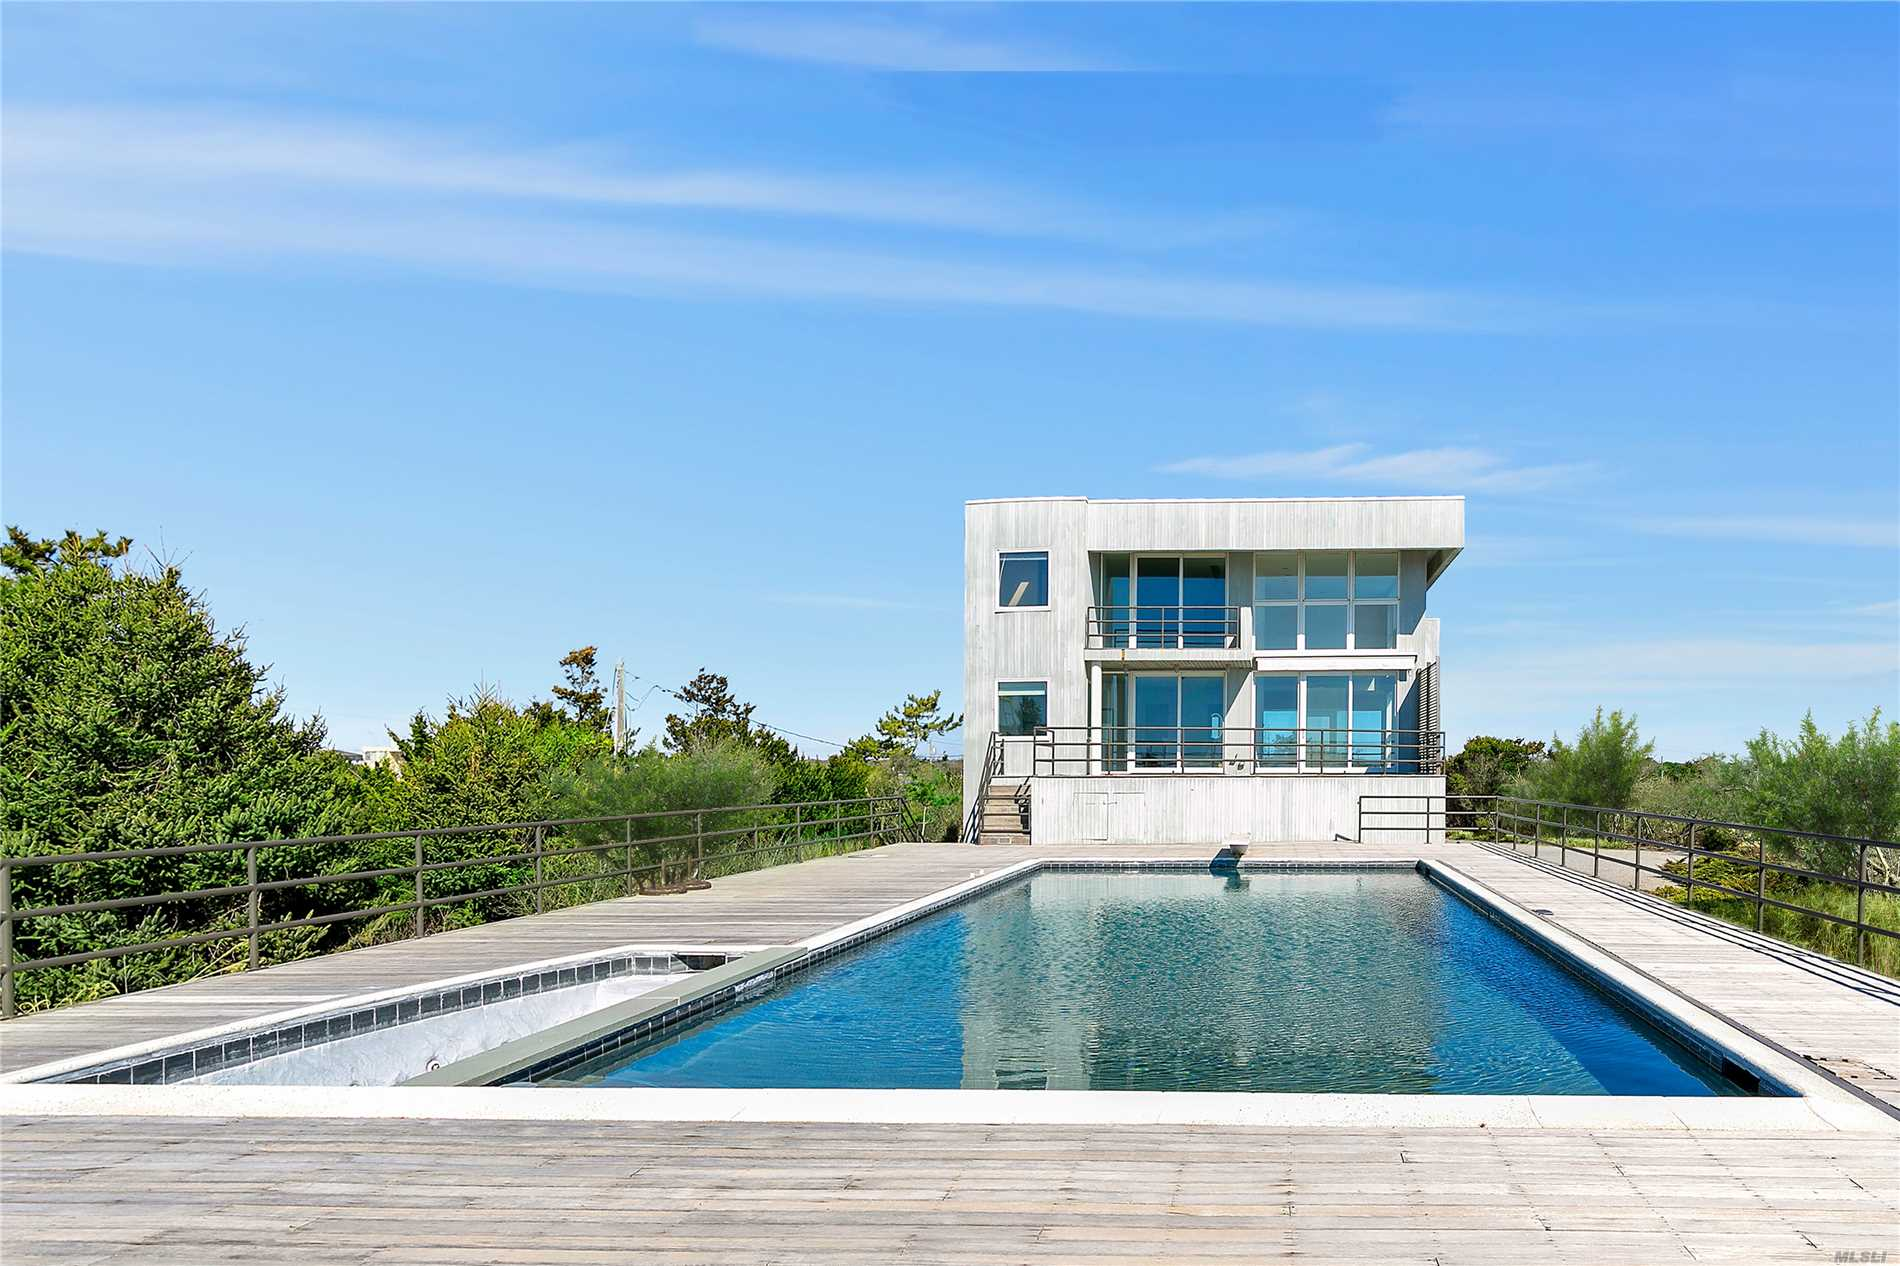 A truly magnificent contemporary sited on over 2 acres of Quogue Oceanfront. This newly renovated 2, 500+/- sqft. home features a chef's kitchen w/ new appliances, 4 bedrooms, 4 baths, cabana bath, living & dining room, heated 20X40 oceanside gunite pool w/spa. With room for tennis and expansion, you can move in now or add to make it your dream Hampton's retreat!